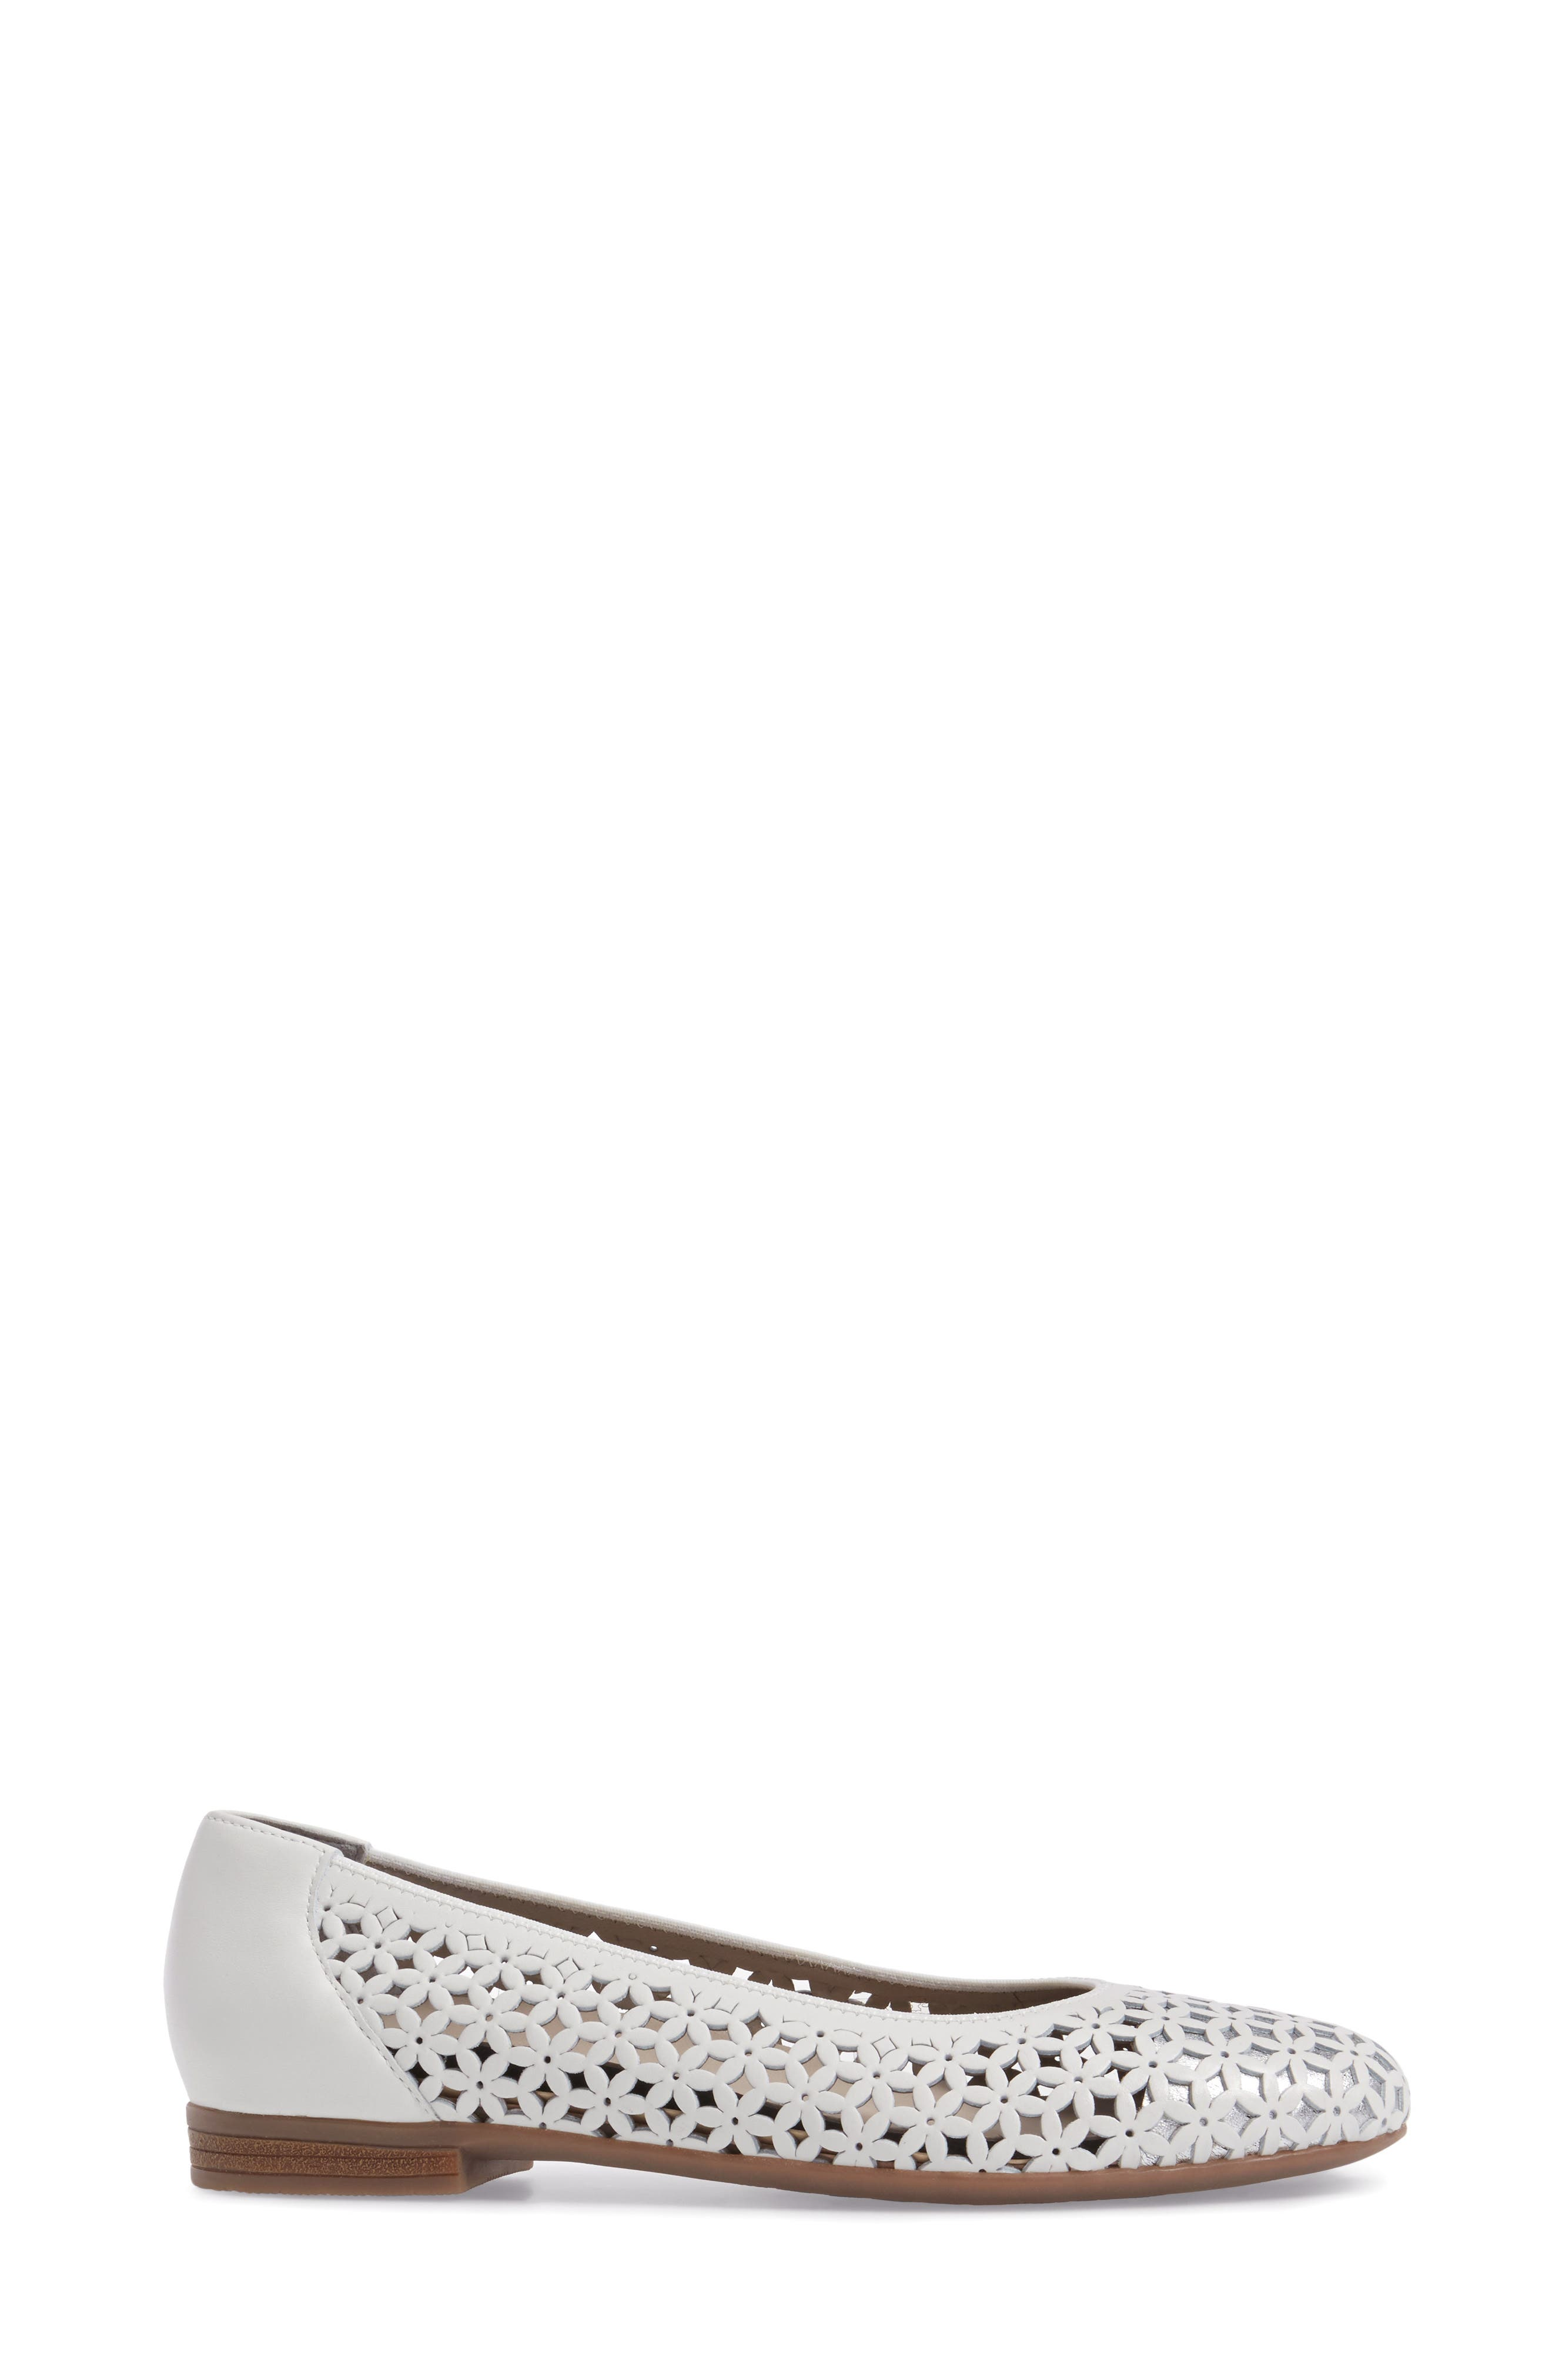 Stephanie Perforated Ballet Flat,                             Alternate thumbnail 3, color,                             White Leather